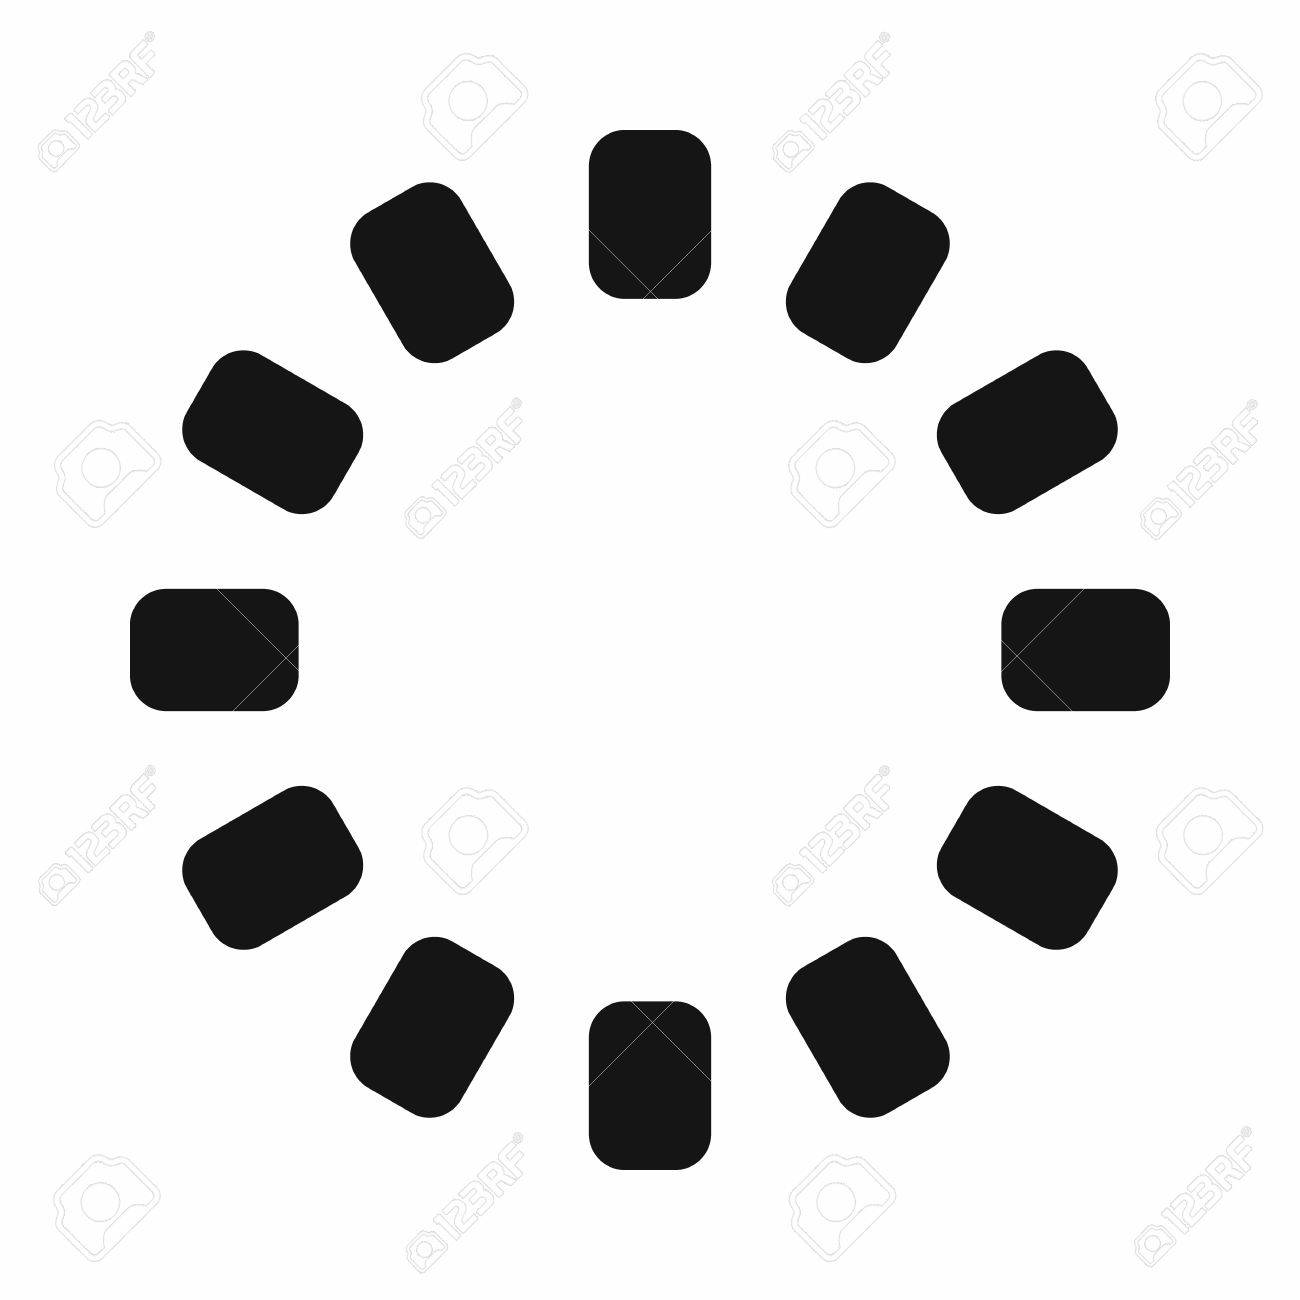 Sign download online icon in simple style isolated on white sign download online icon in simple style isolated on white background loading symbol stock vector biocorpaavc Image collections